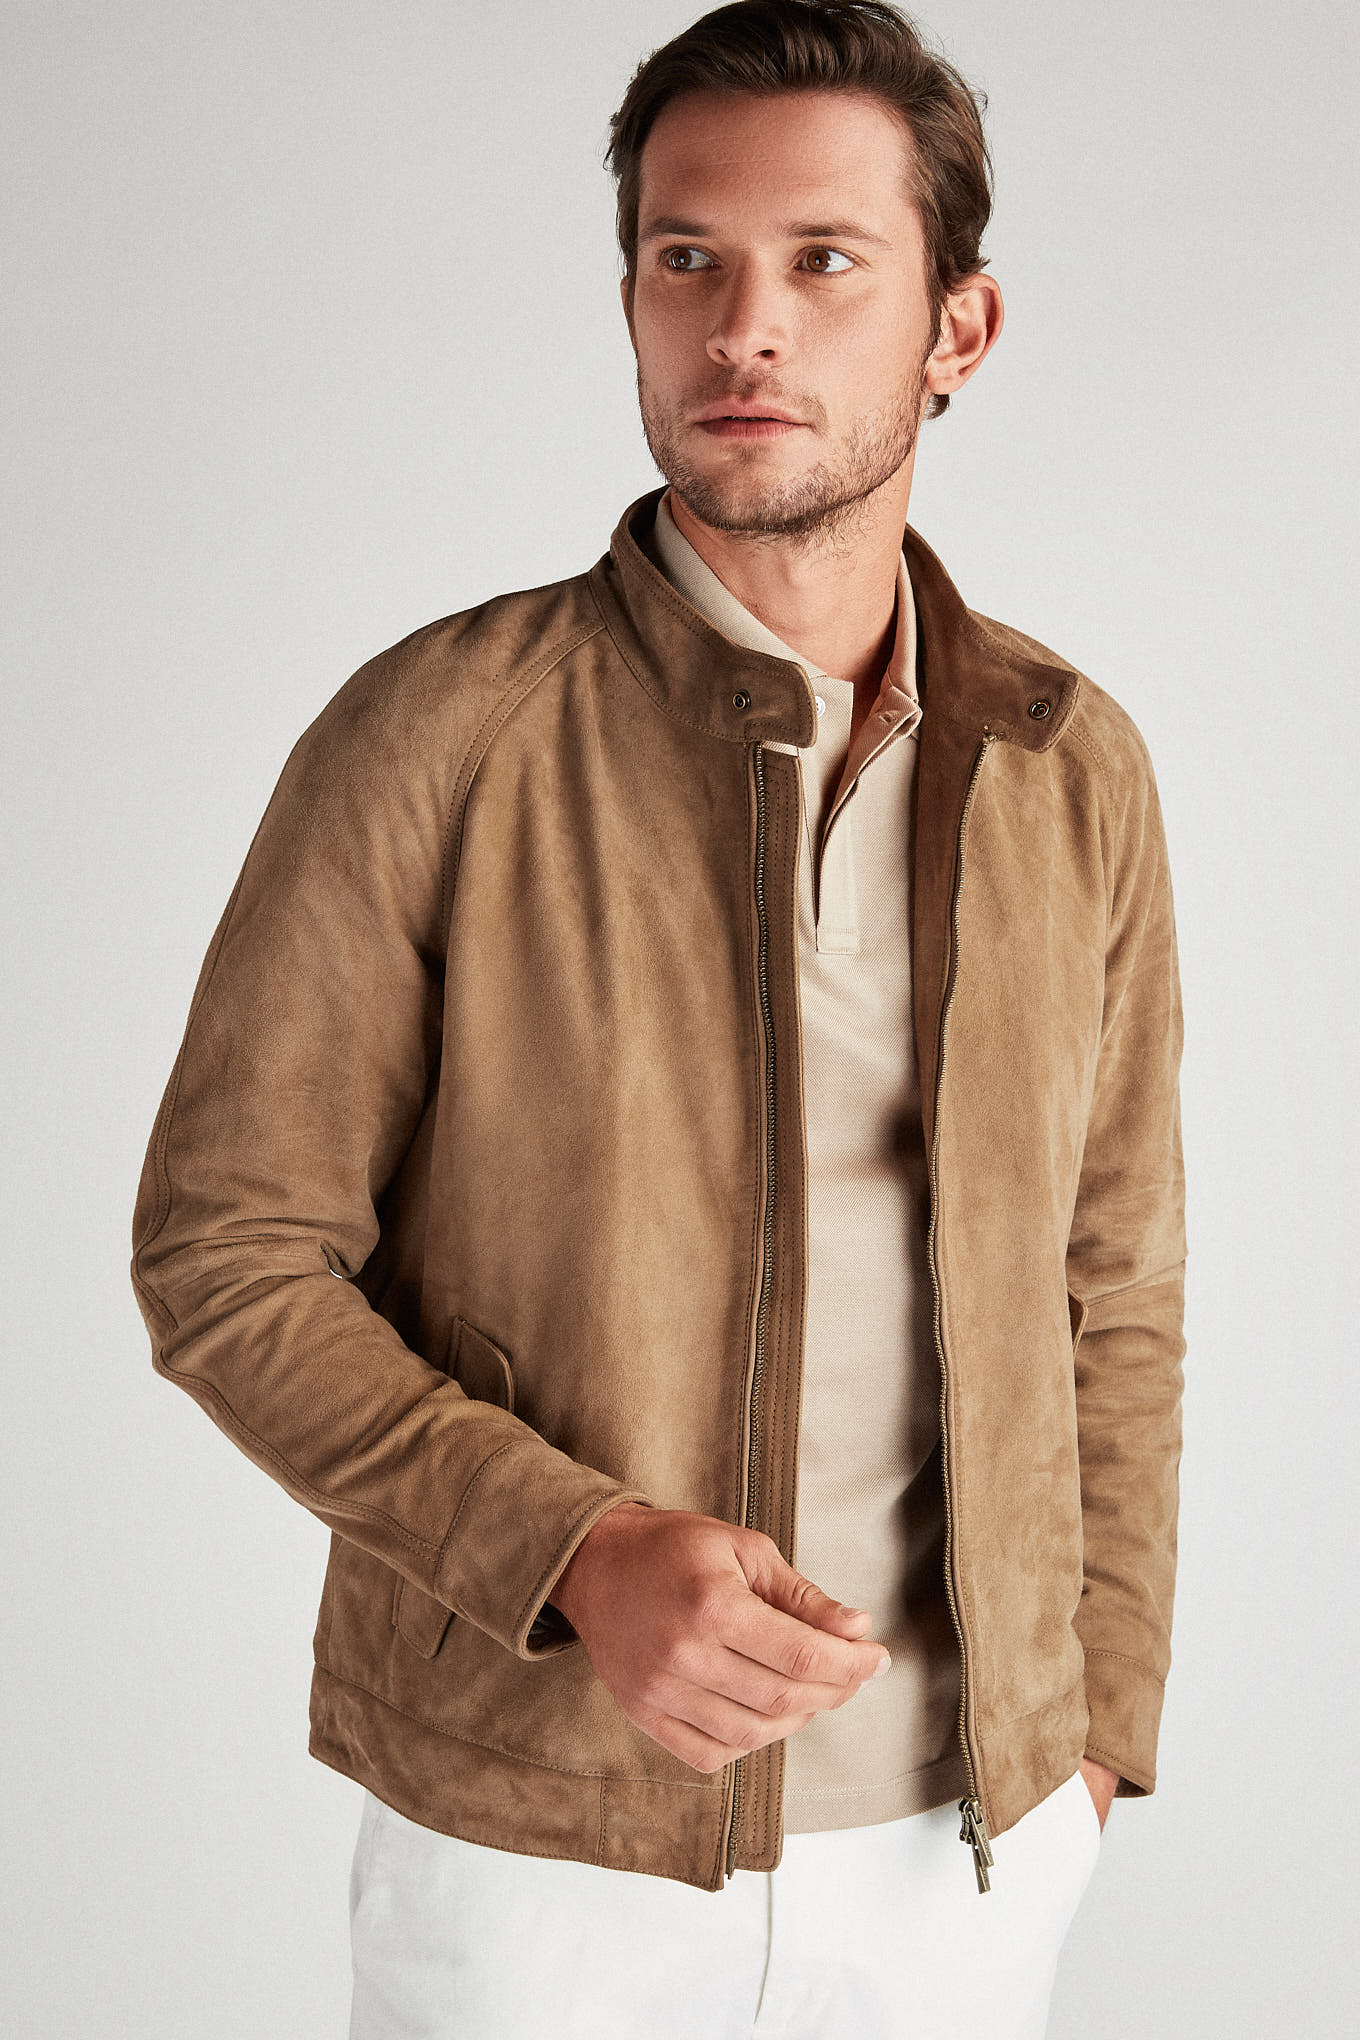 Leather Jacket Beige Casual Man